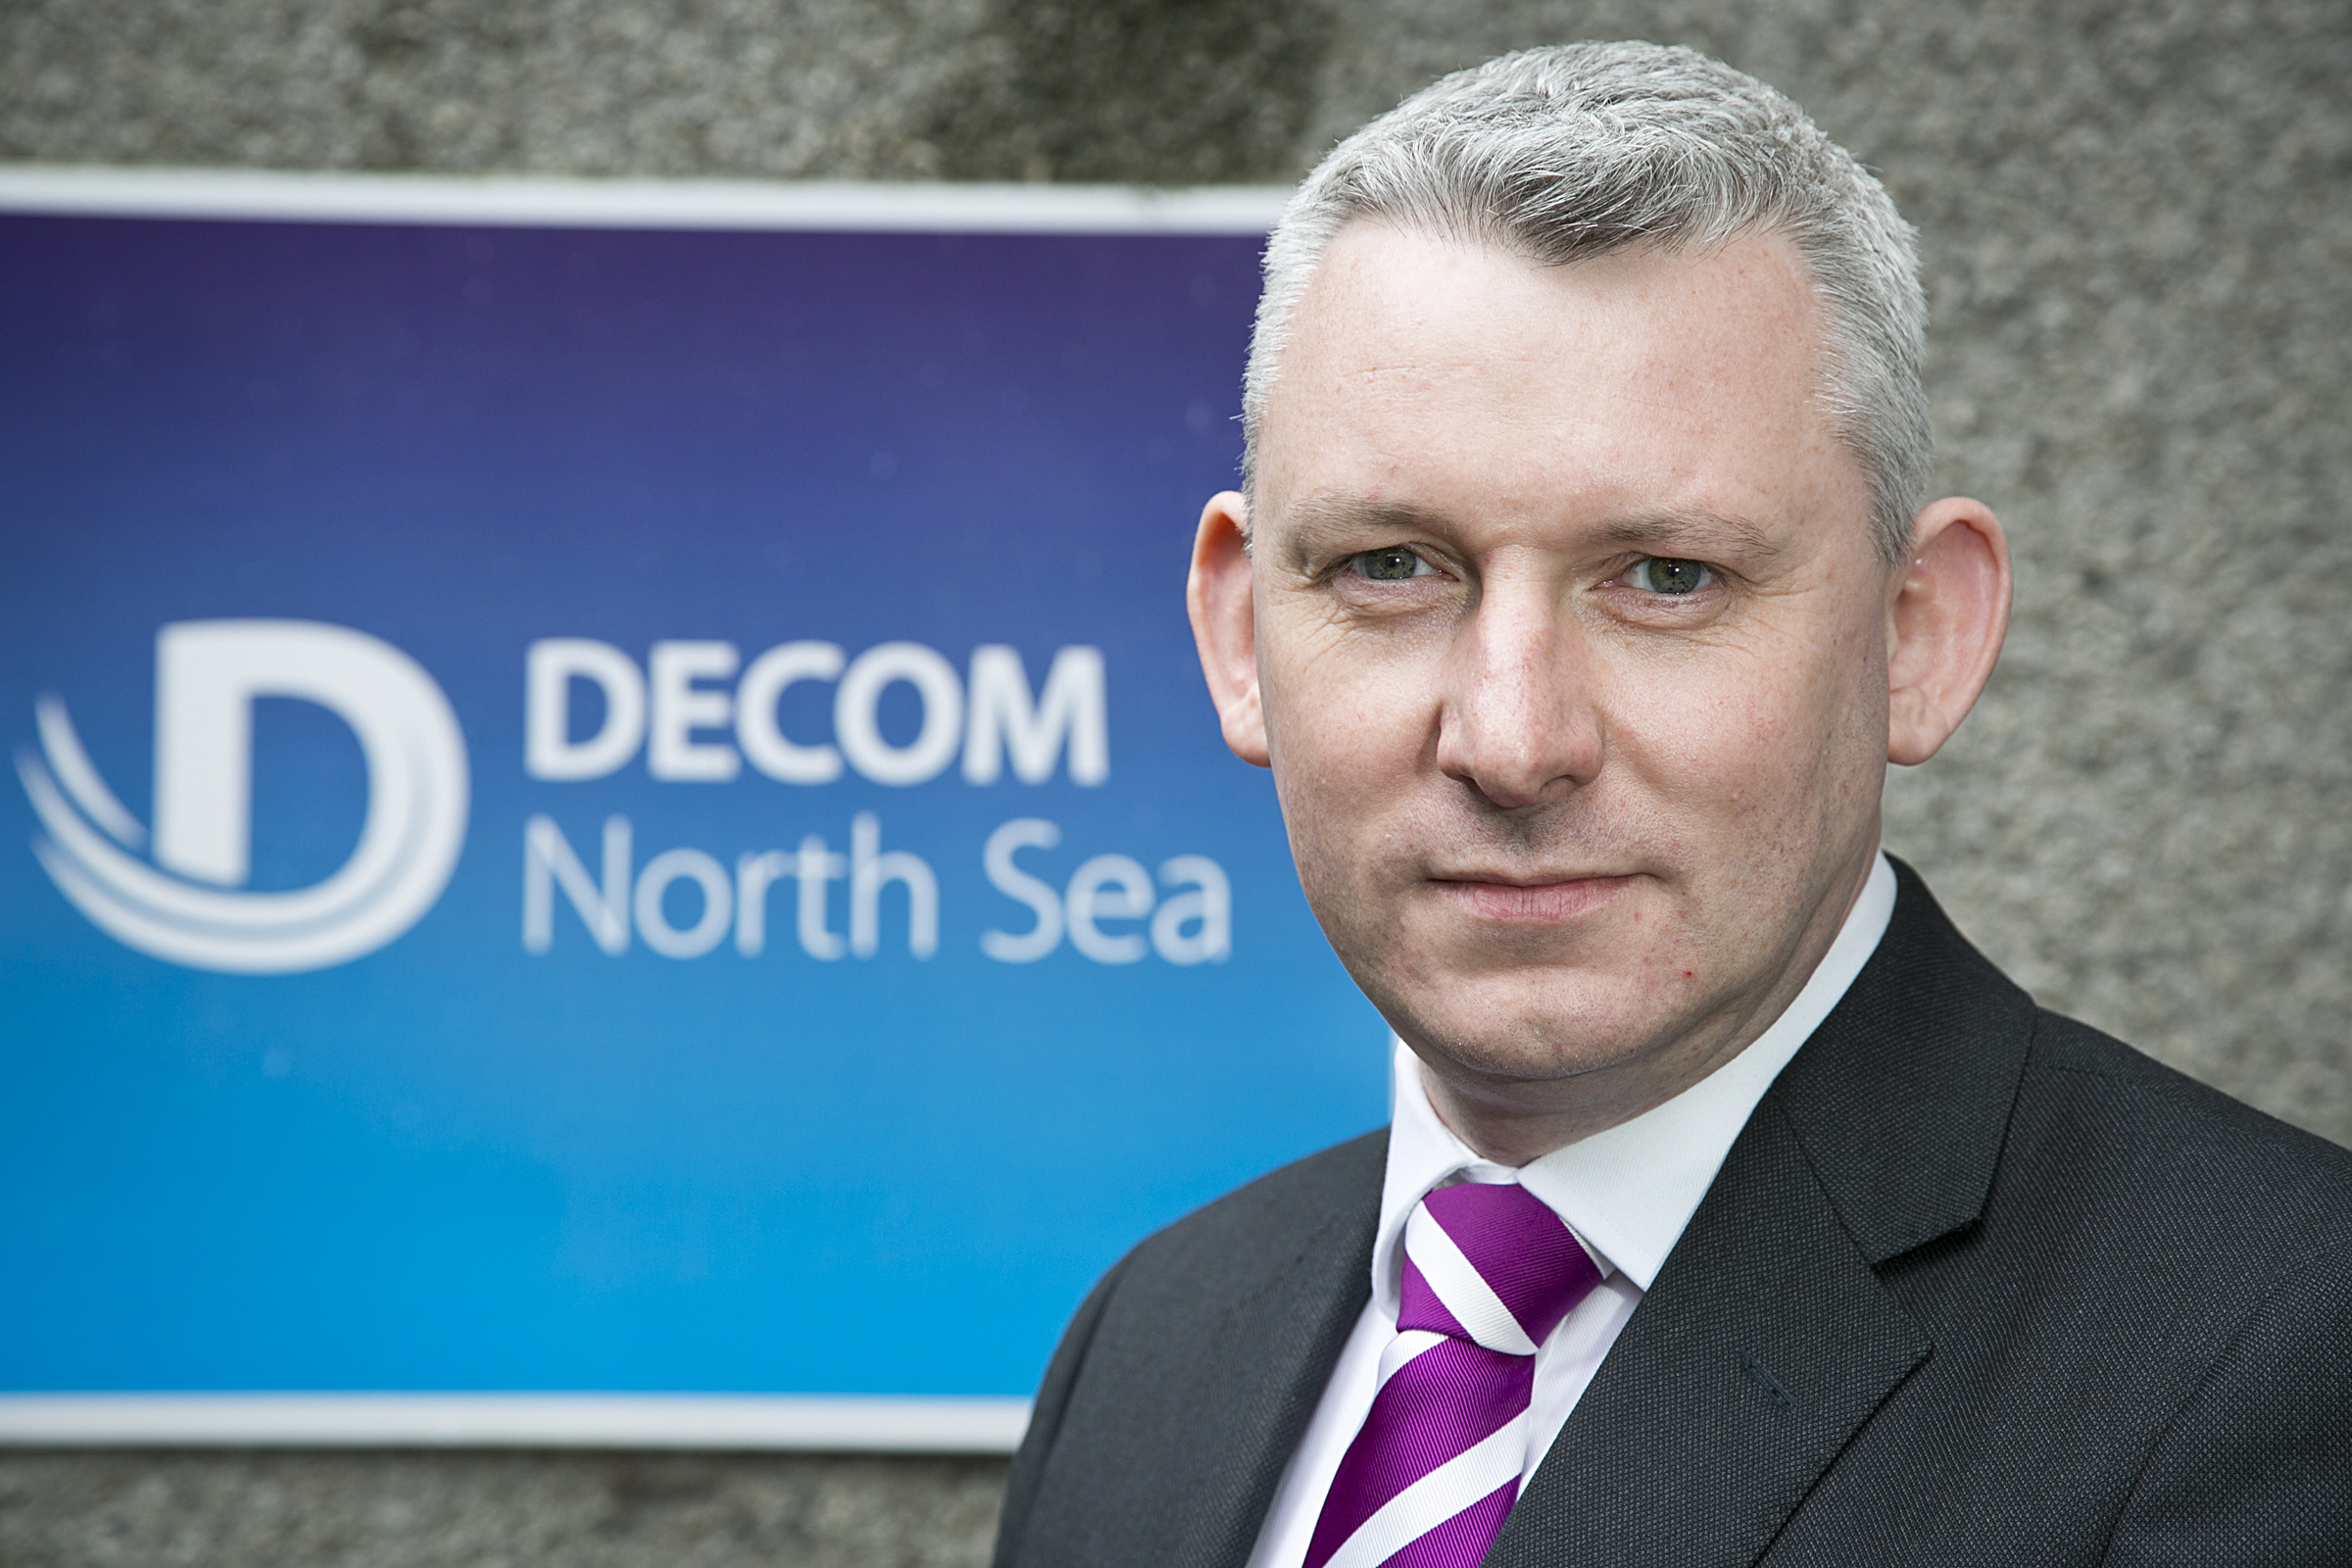 Oil and gas industry to hear nuclear decommissioning lessons